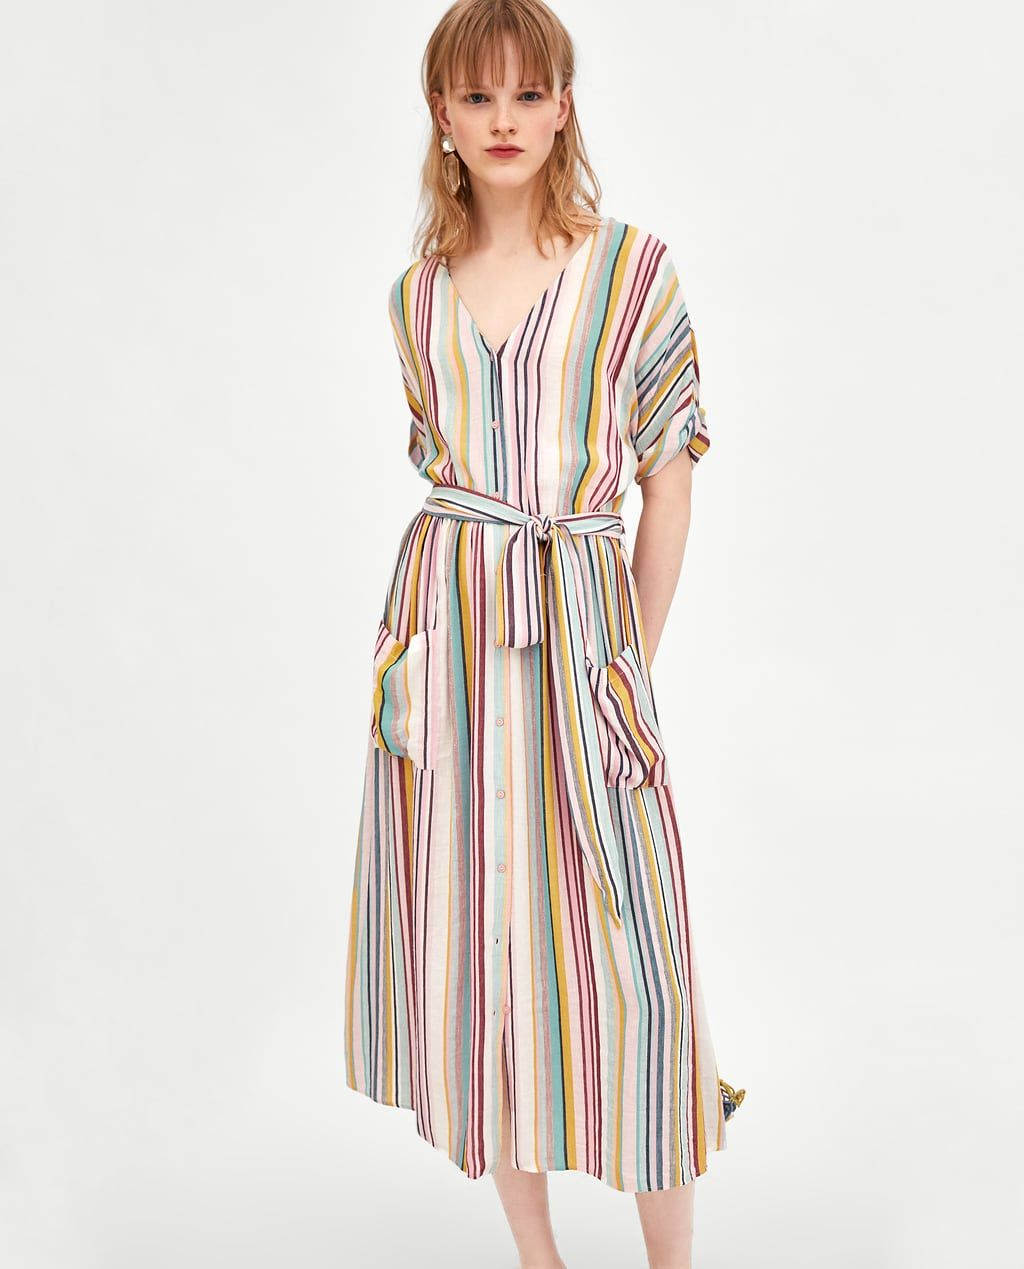 2c959e0dc0903 STRIPED MIDI DRESS from Zara | Striped | Style Inspiration 2019 in ...